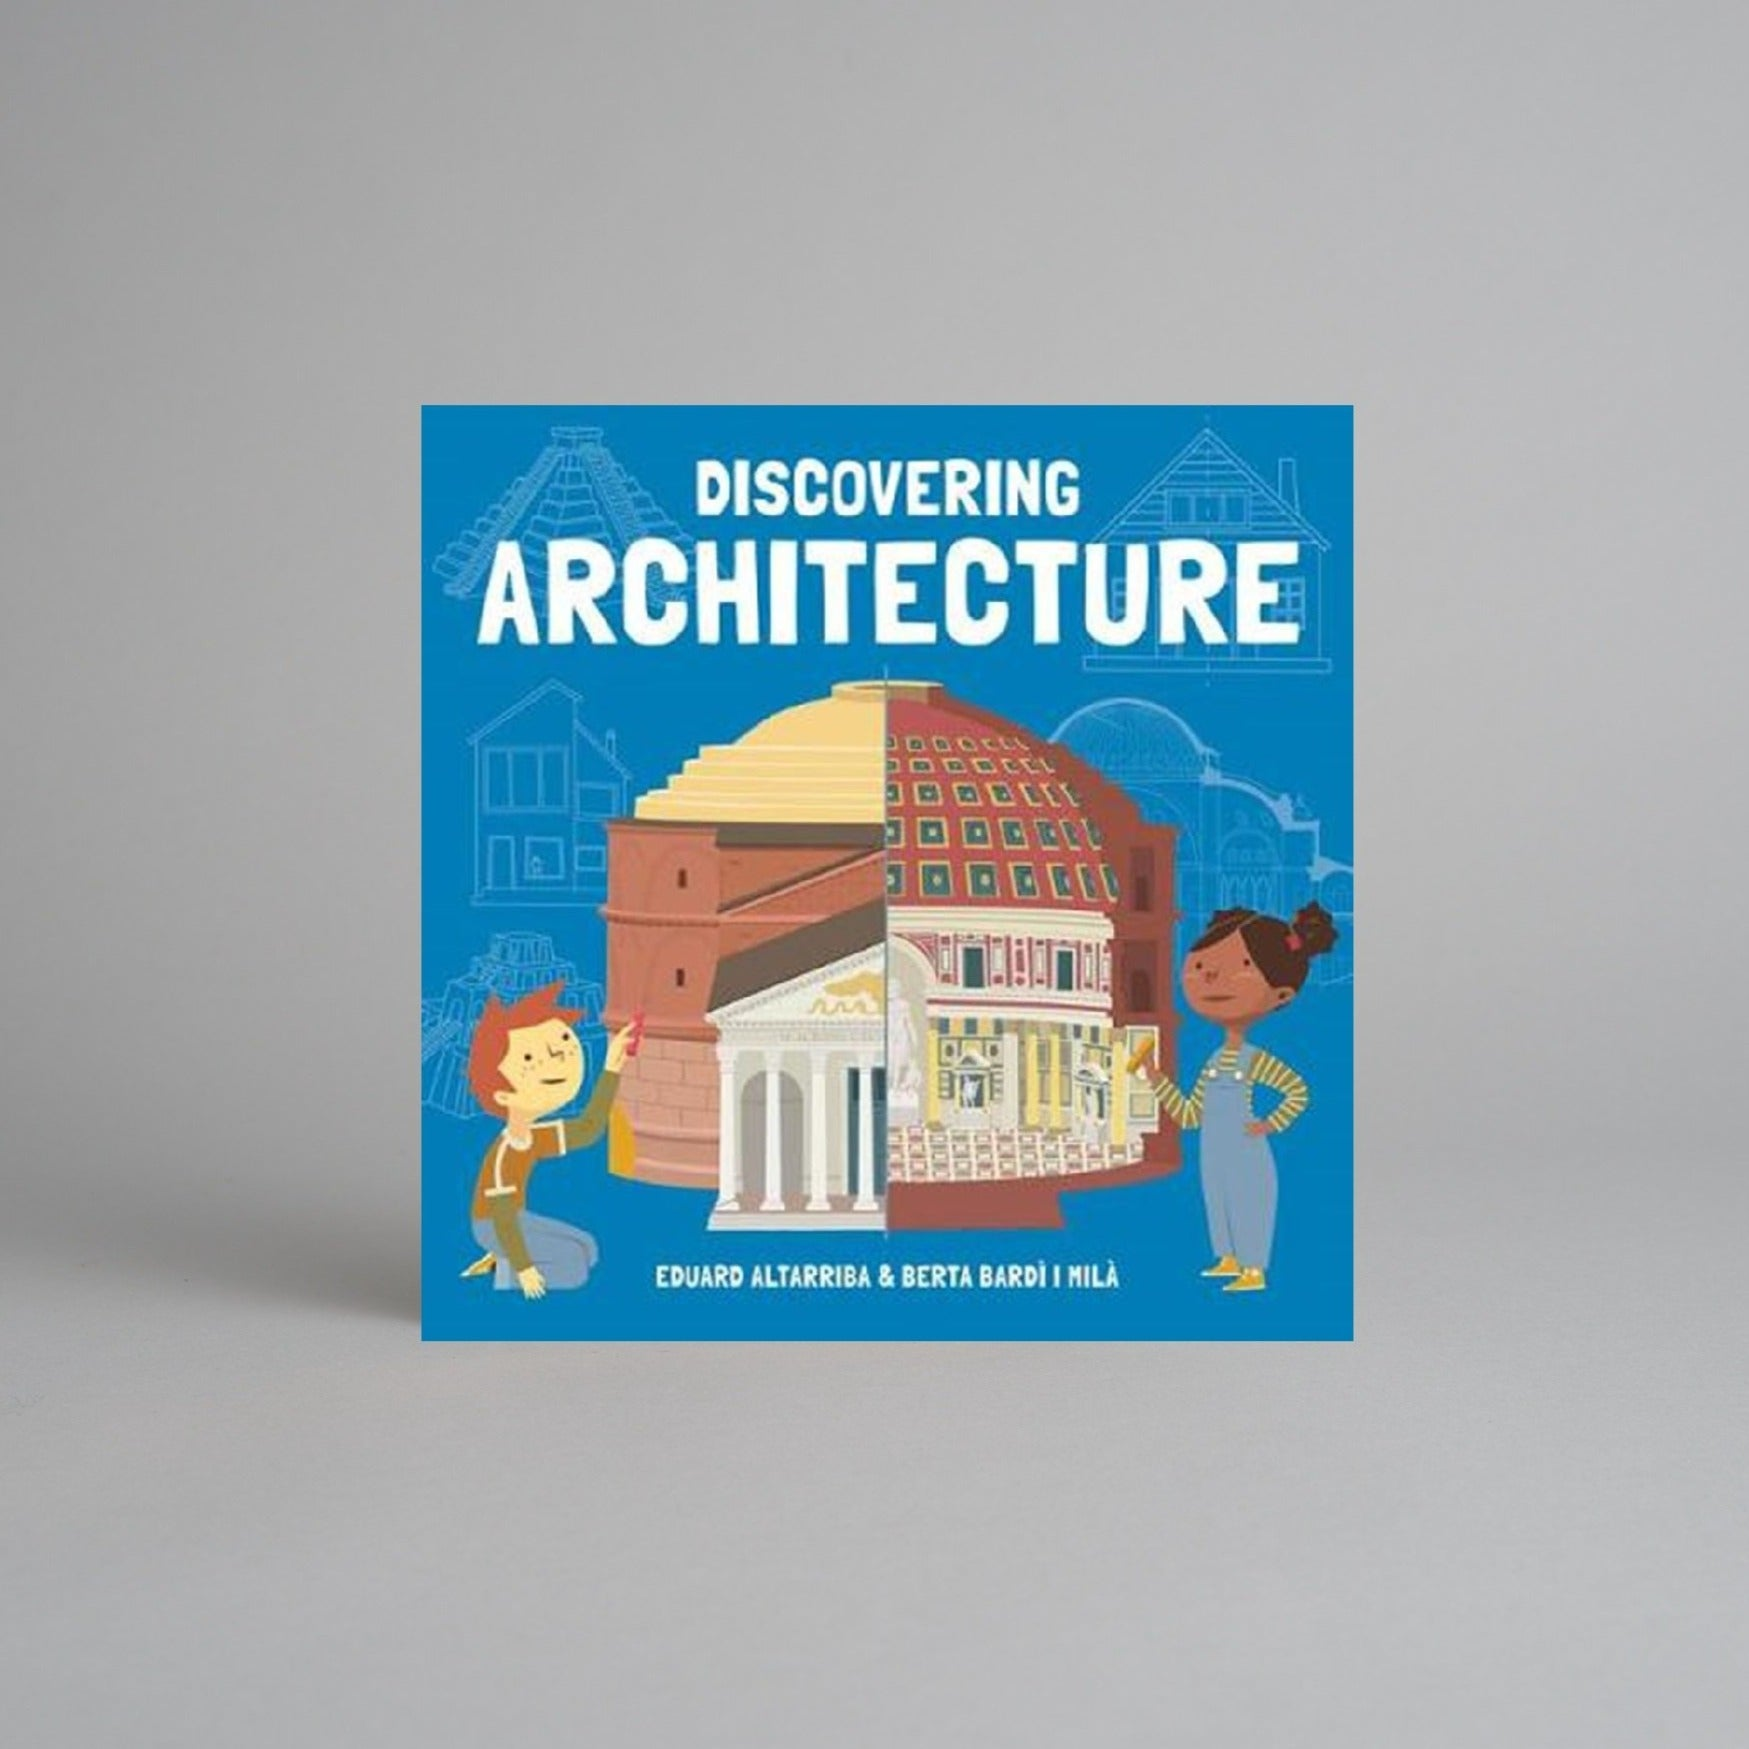 Discovering Architecture by Eduard Altarriba and Berta Bardí i Milà